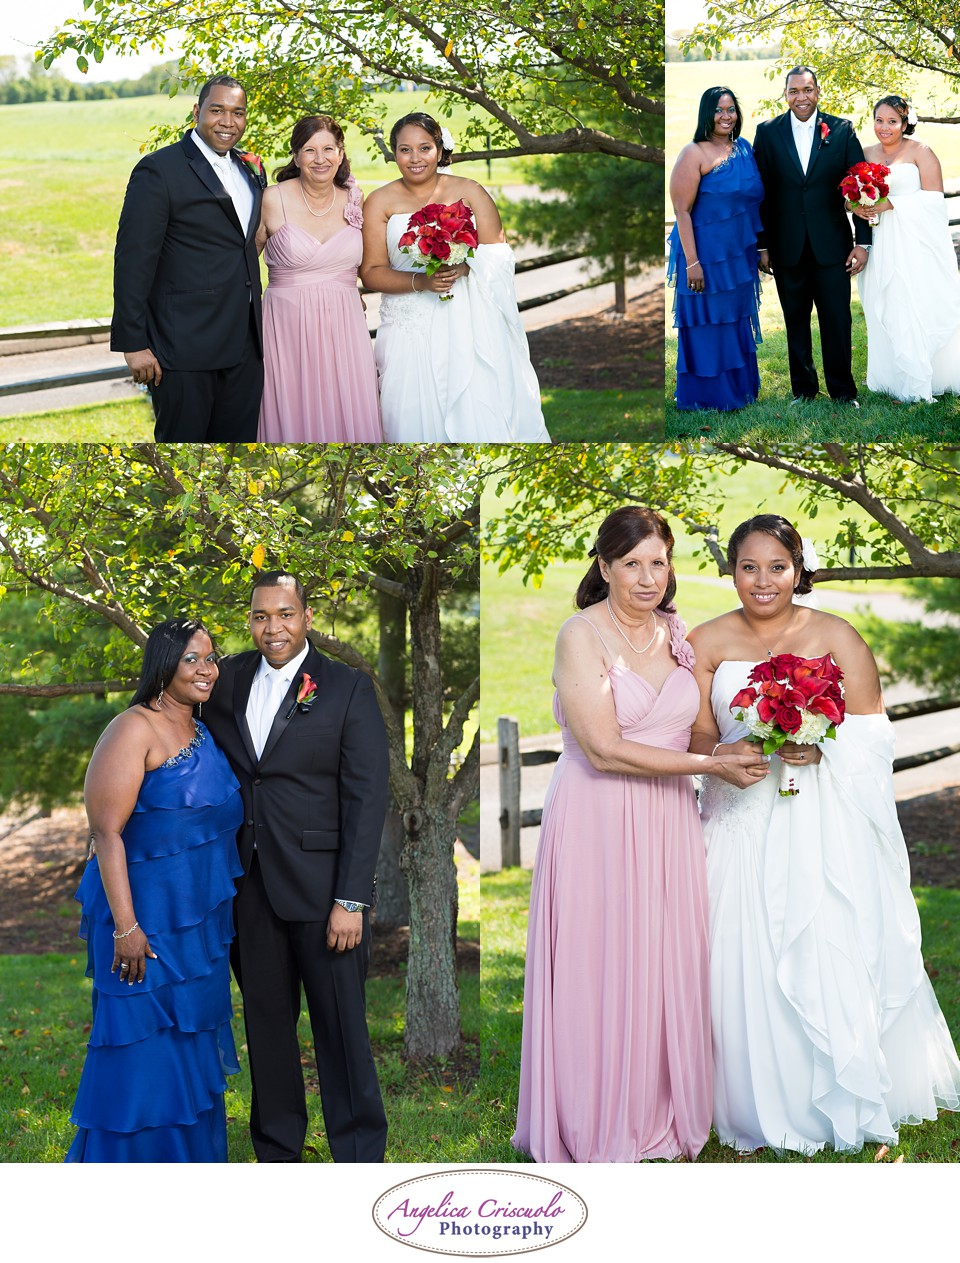 Staten Island Photography Portrait Wedding Ideas VJCoddWedding8.12.12-237